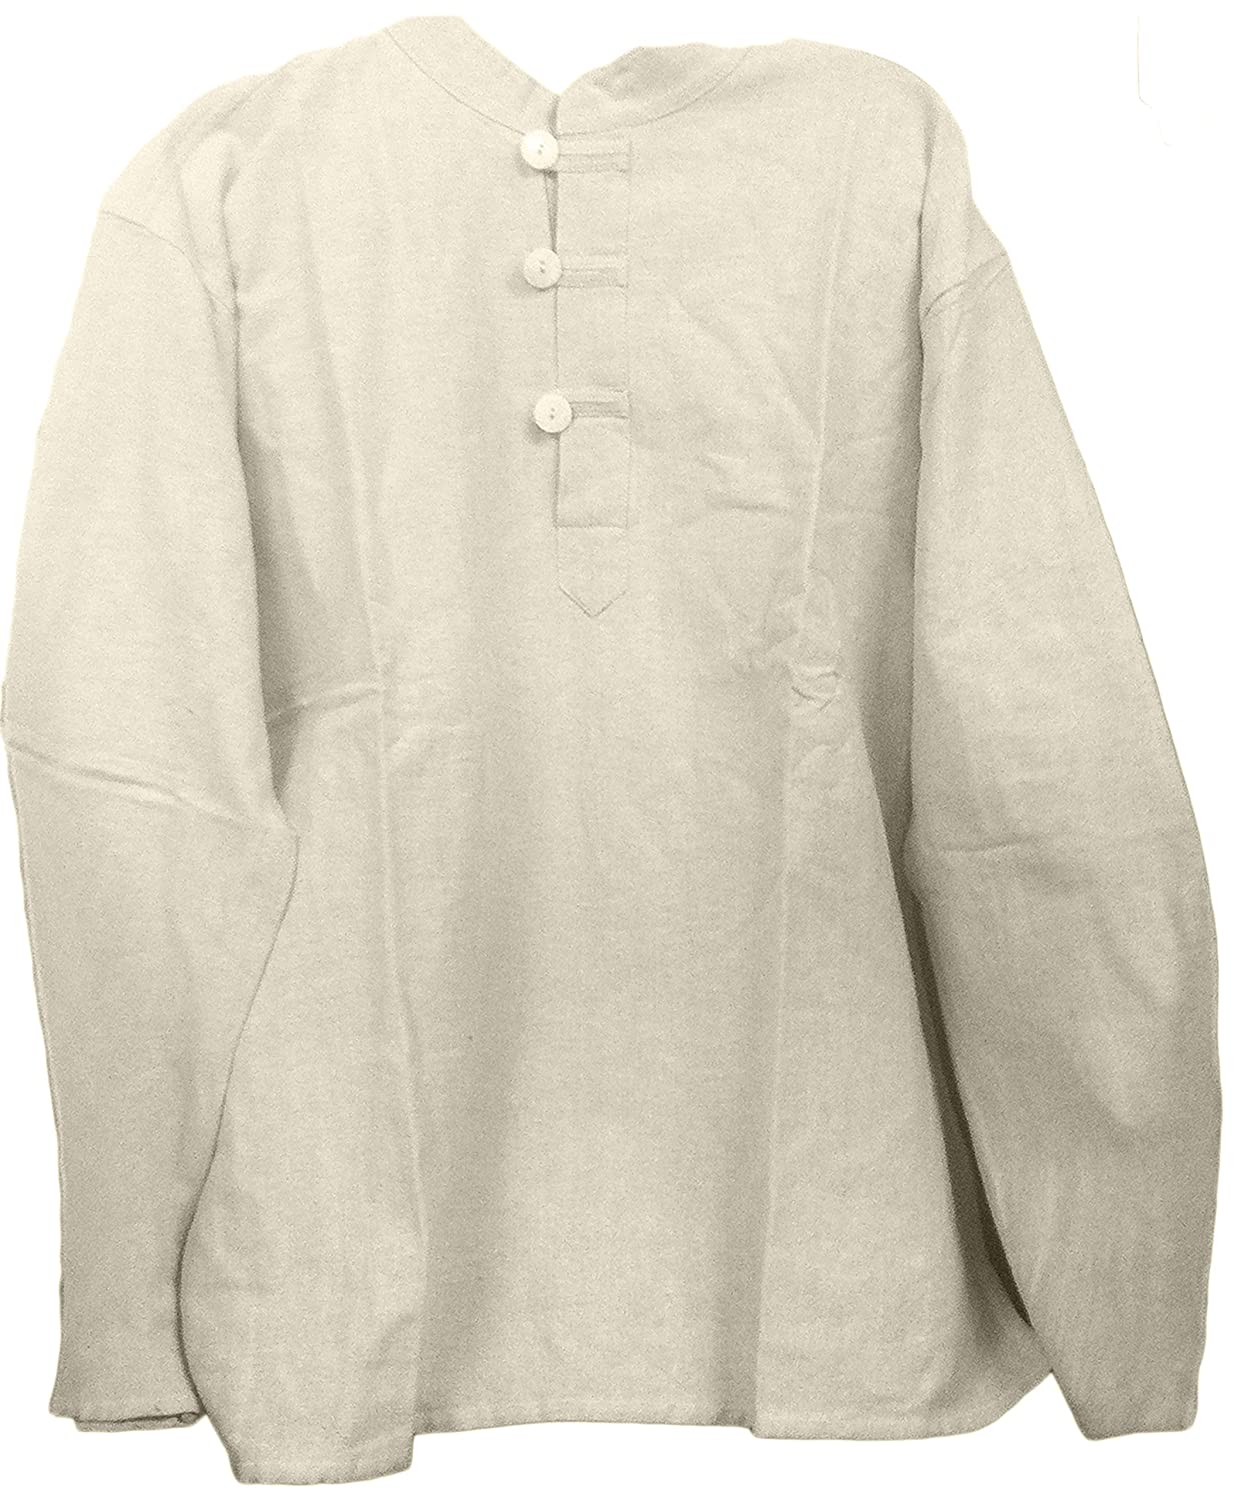 Mens Tunic Muslin Cotton Cream Colored